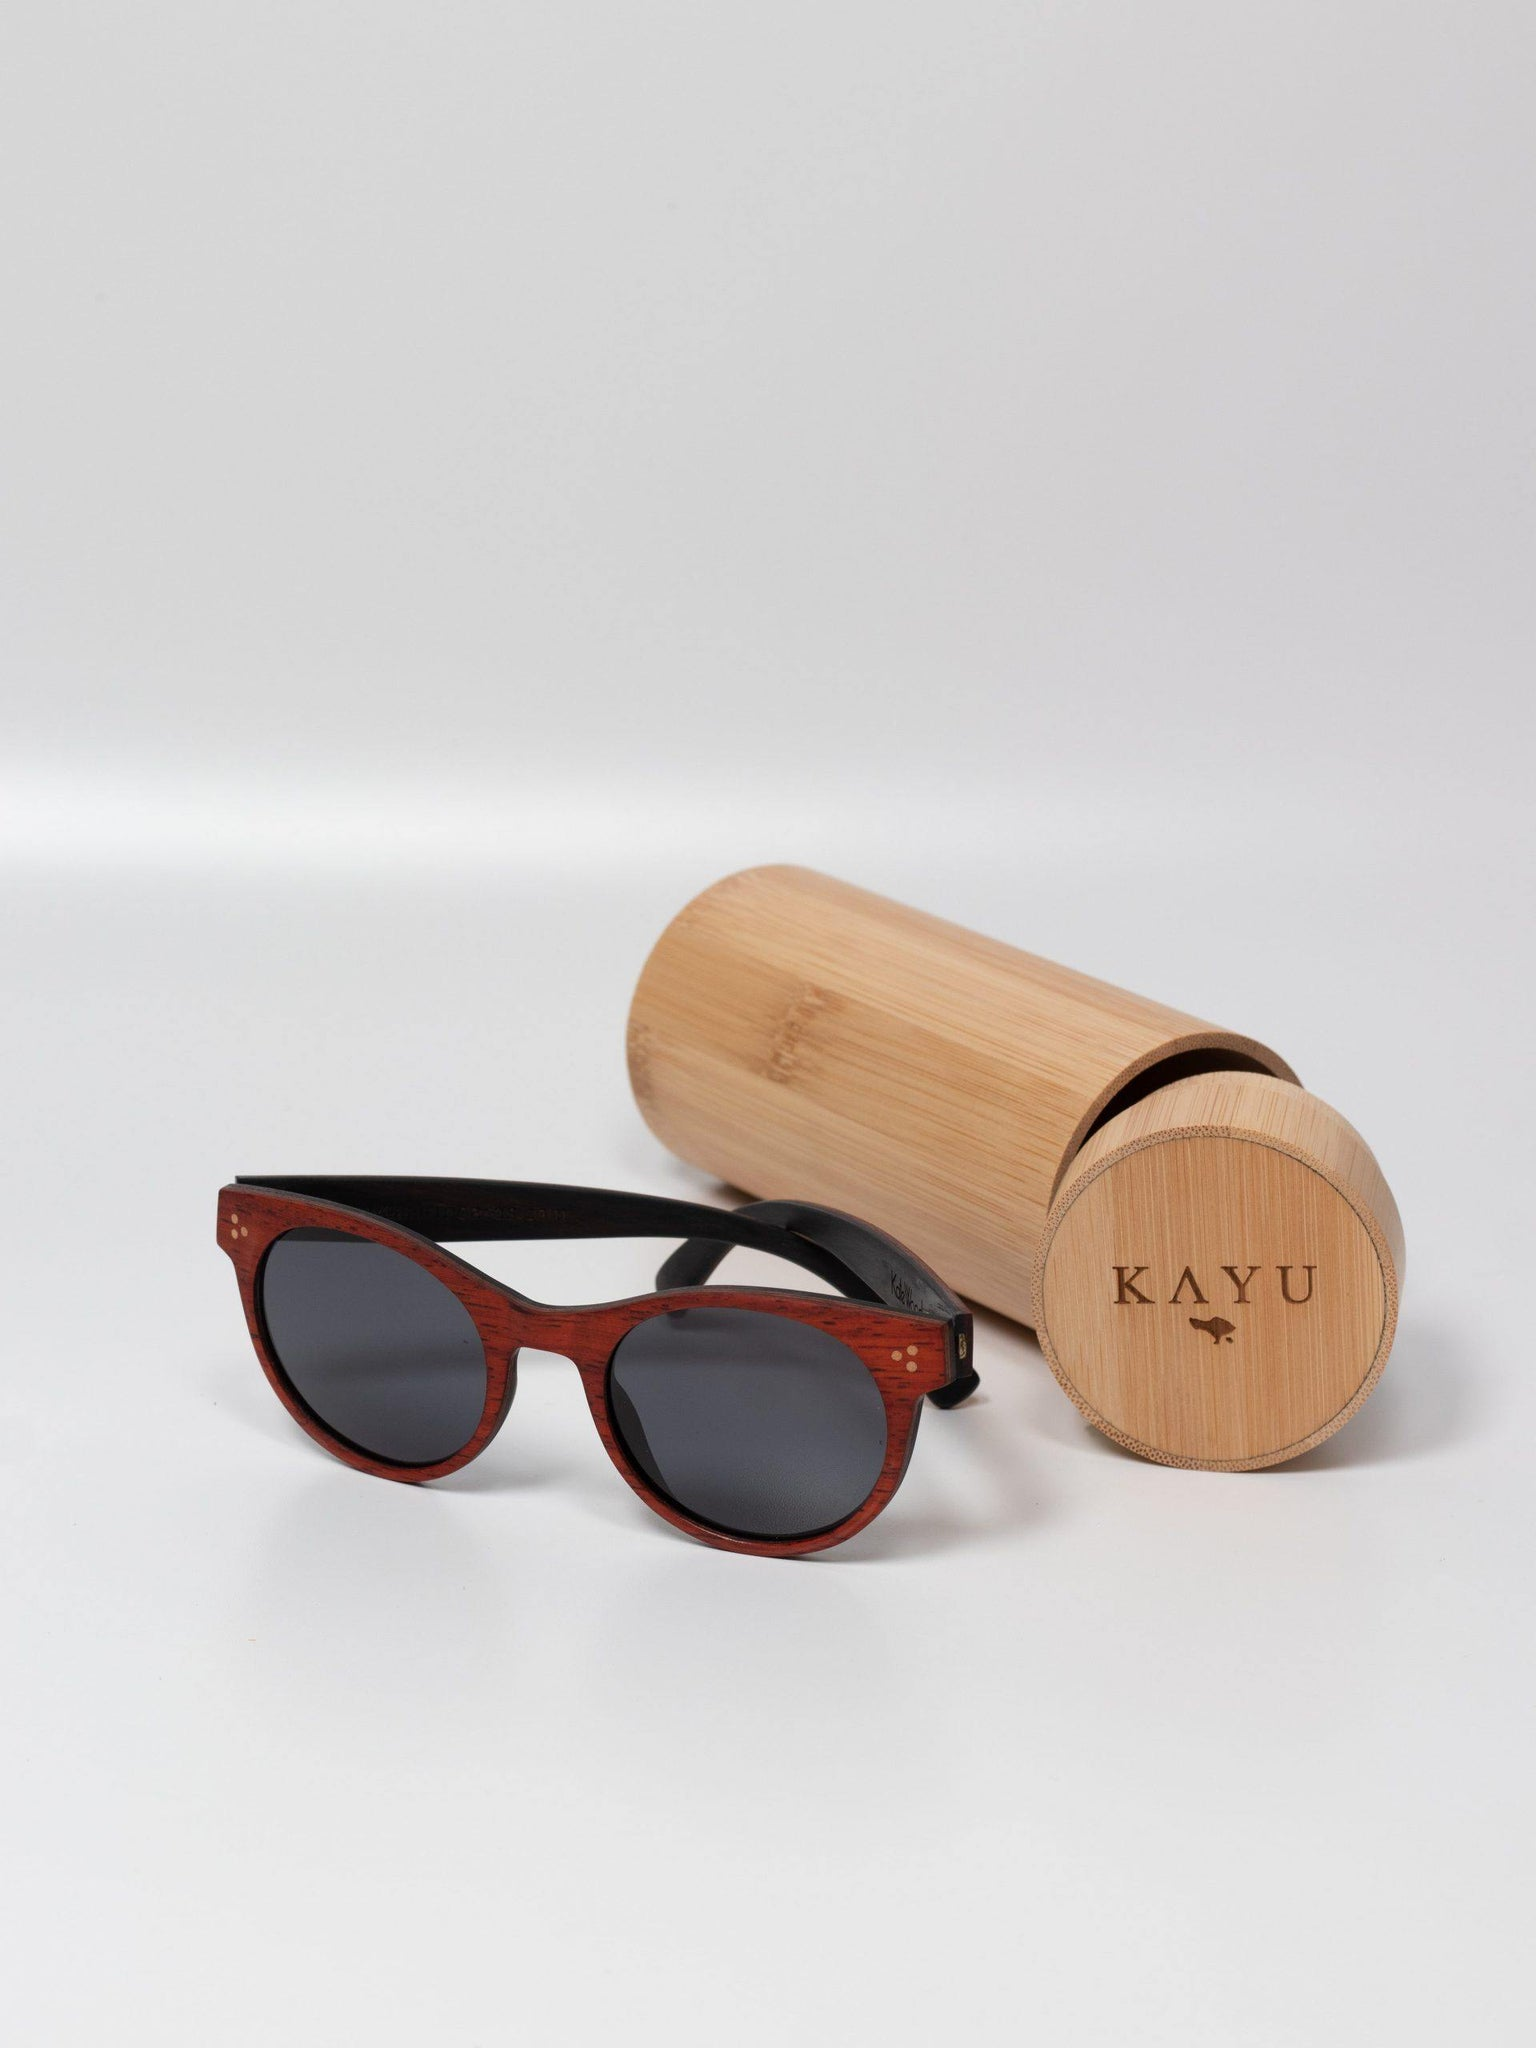 The Batu Bolong Red Rosewood - Kayu Surfboards